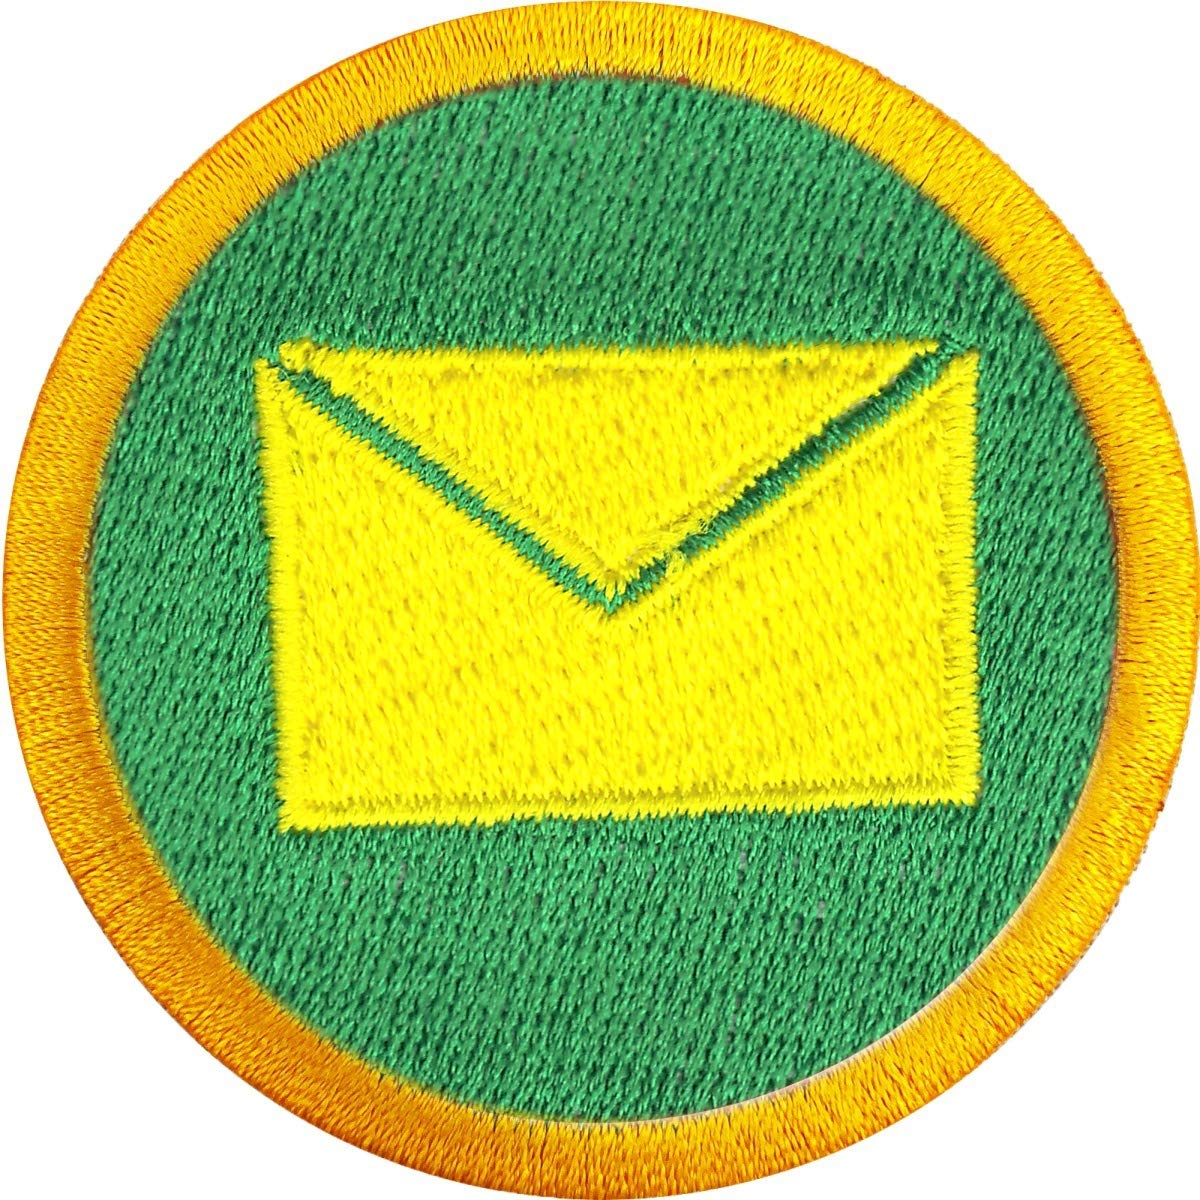 Mail Delivery Wilderness Scout Merit Badge Iron on Patch by Patch Collection